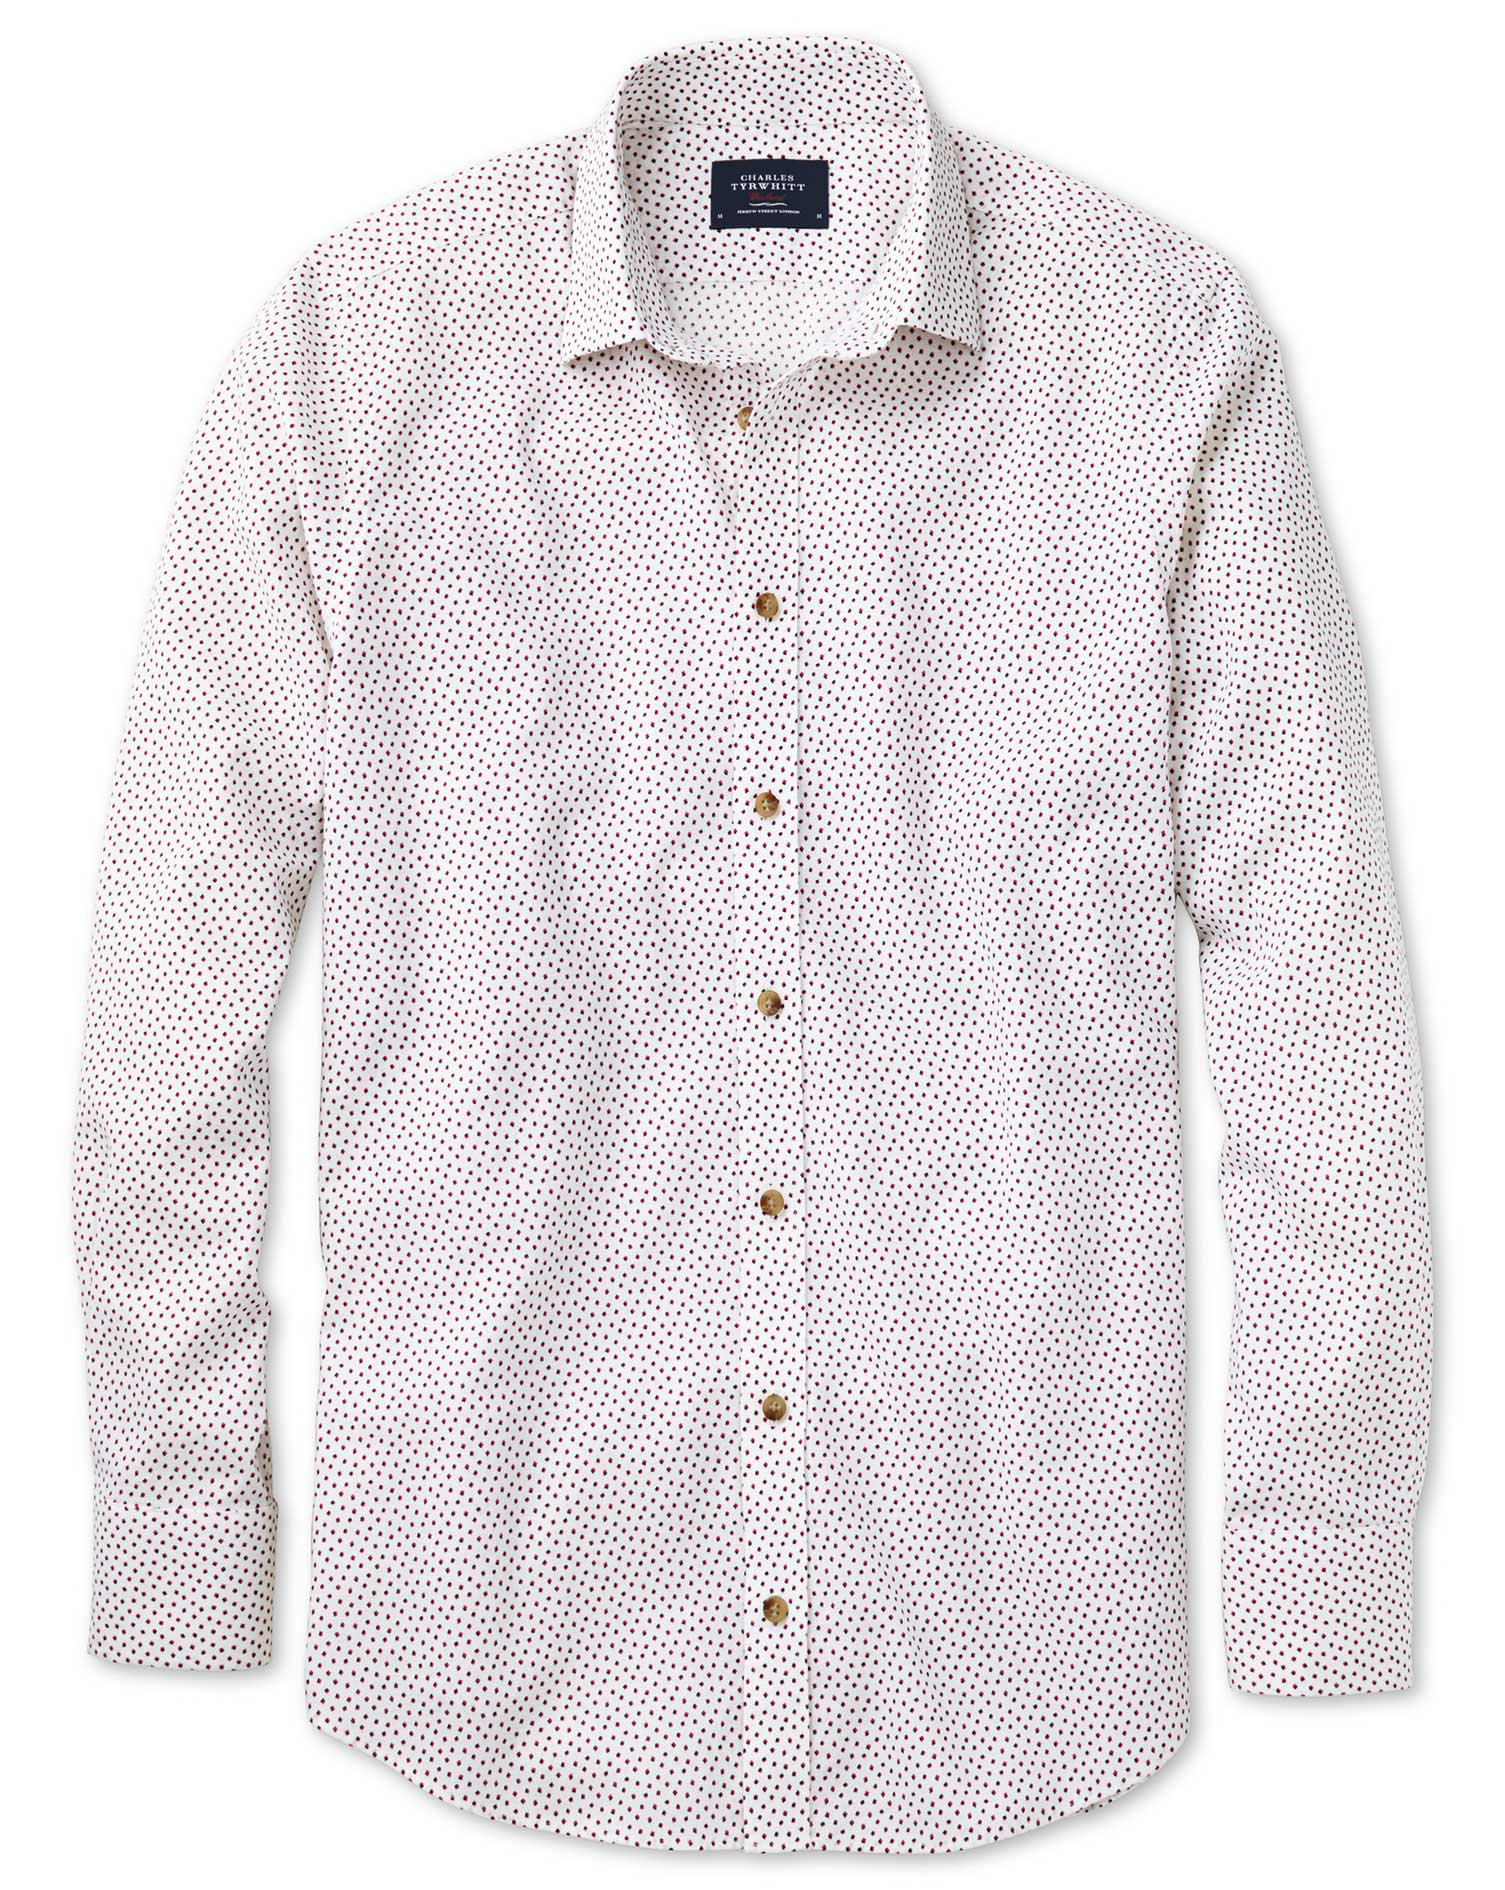 Slim Fit White and Pink Square Print Shirt Single Cuff Size Large by Charles Tyrwhitt